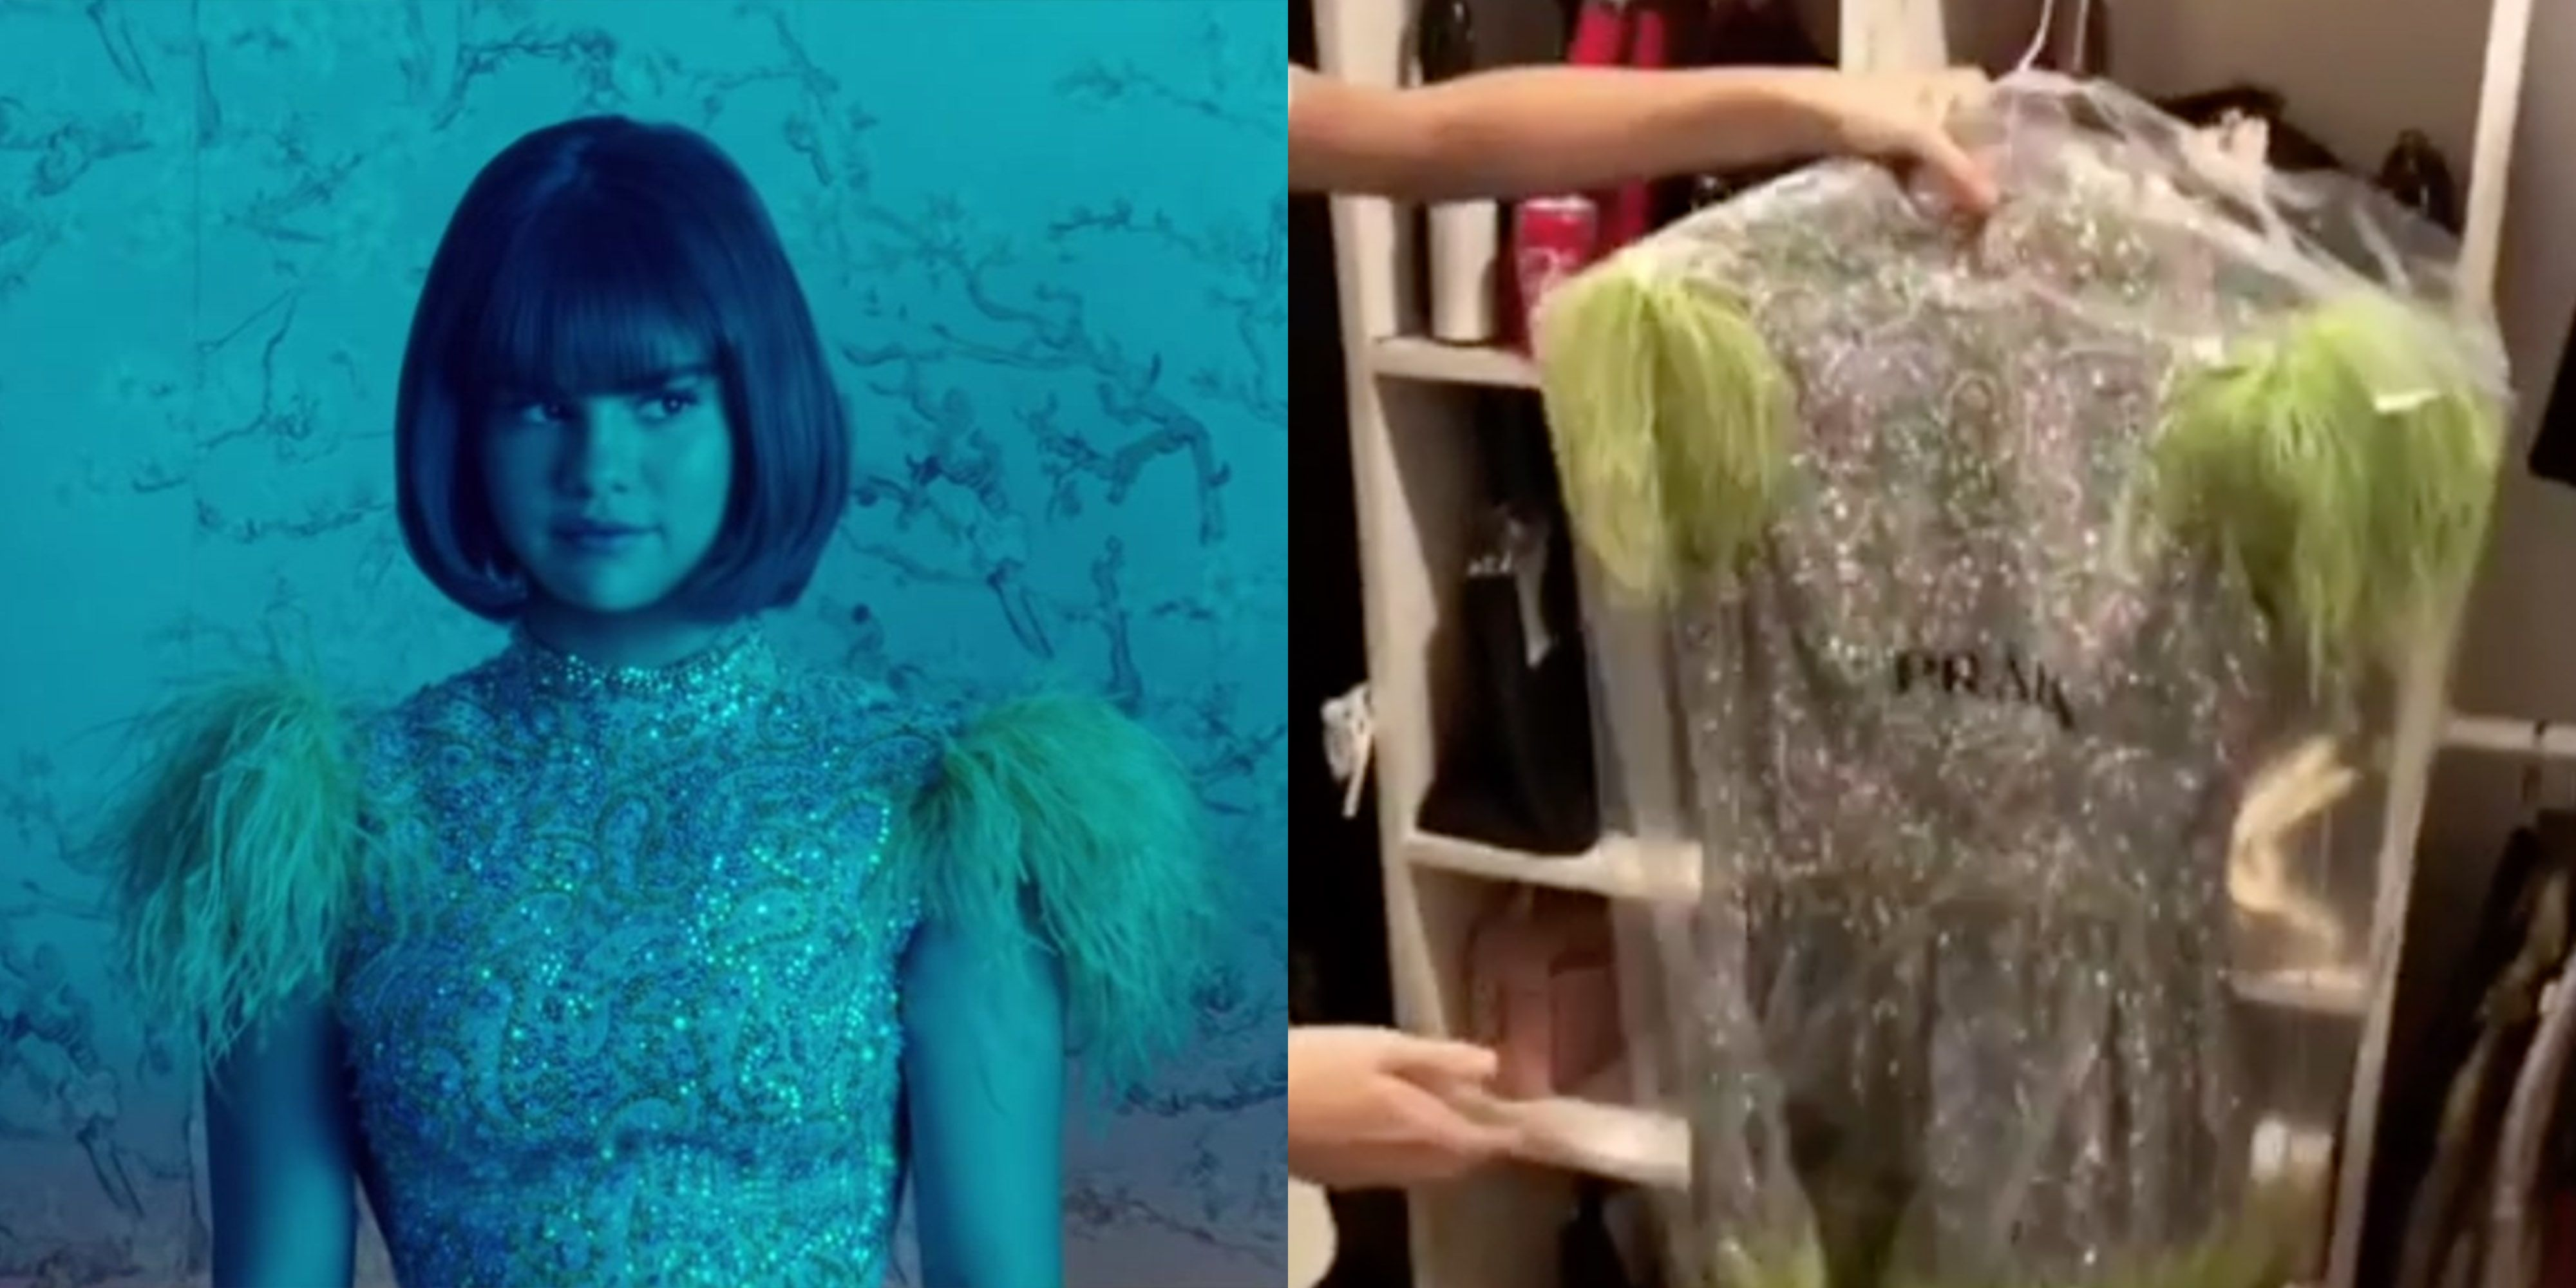 Selena Gomez Giving Away Back To You Music Video Dress